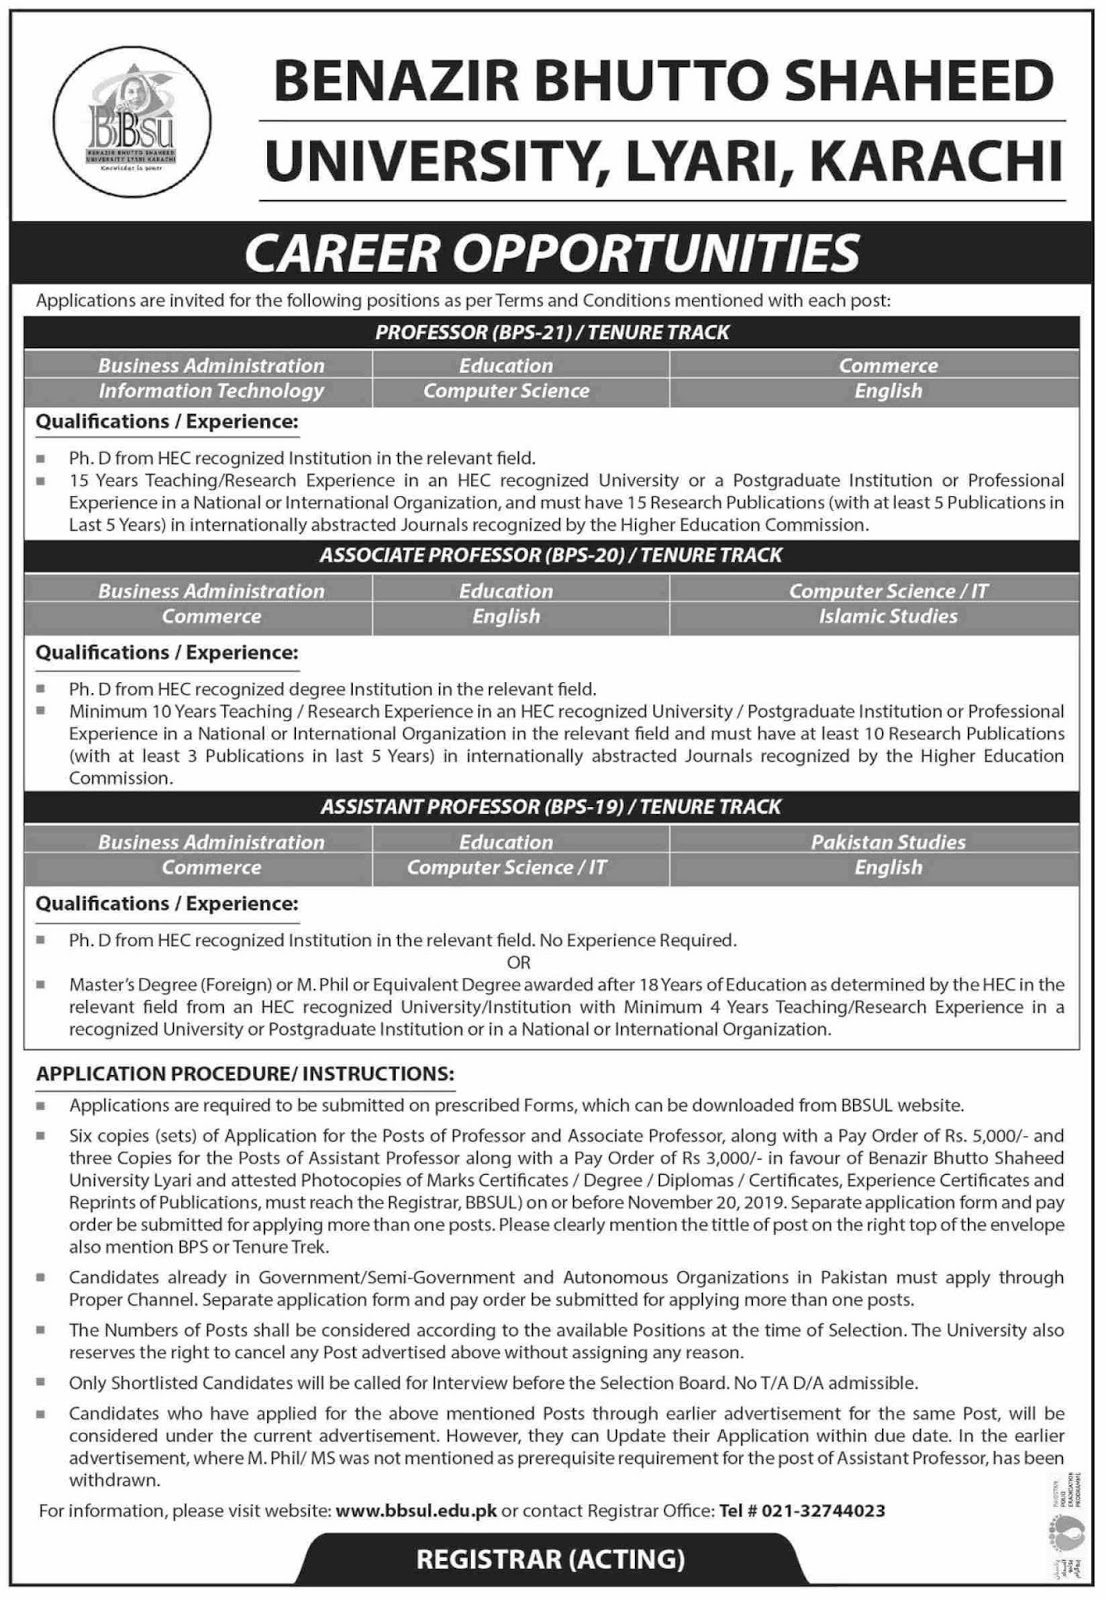 Jobs in Benazir Bhutto Shaheed University Karachi Nov 2019